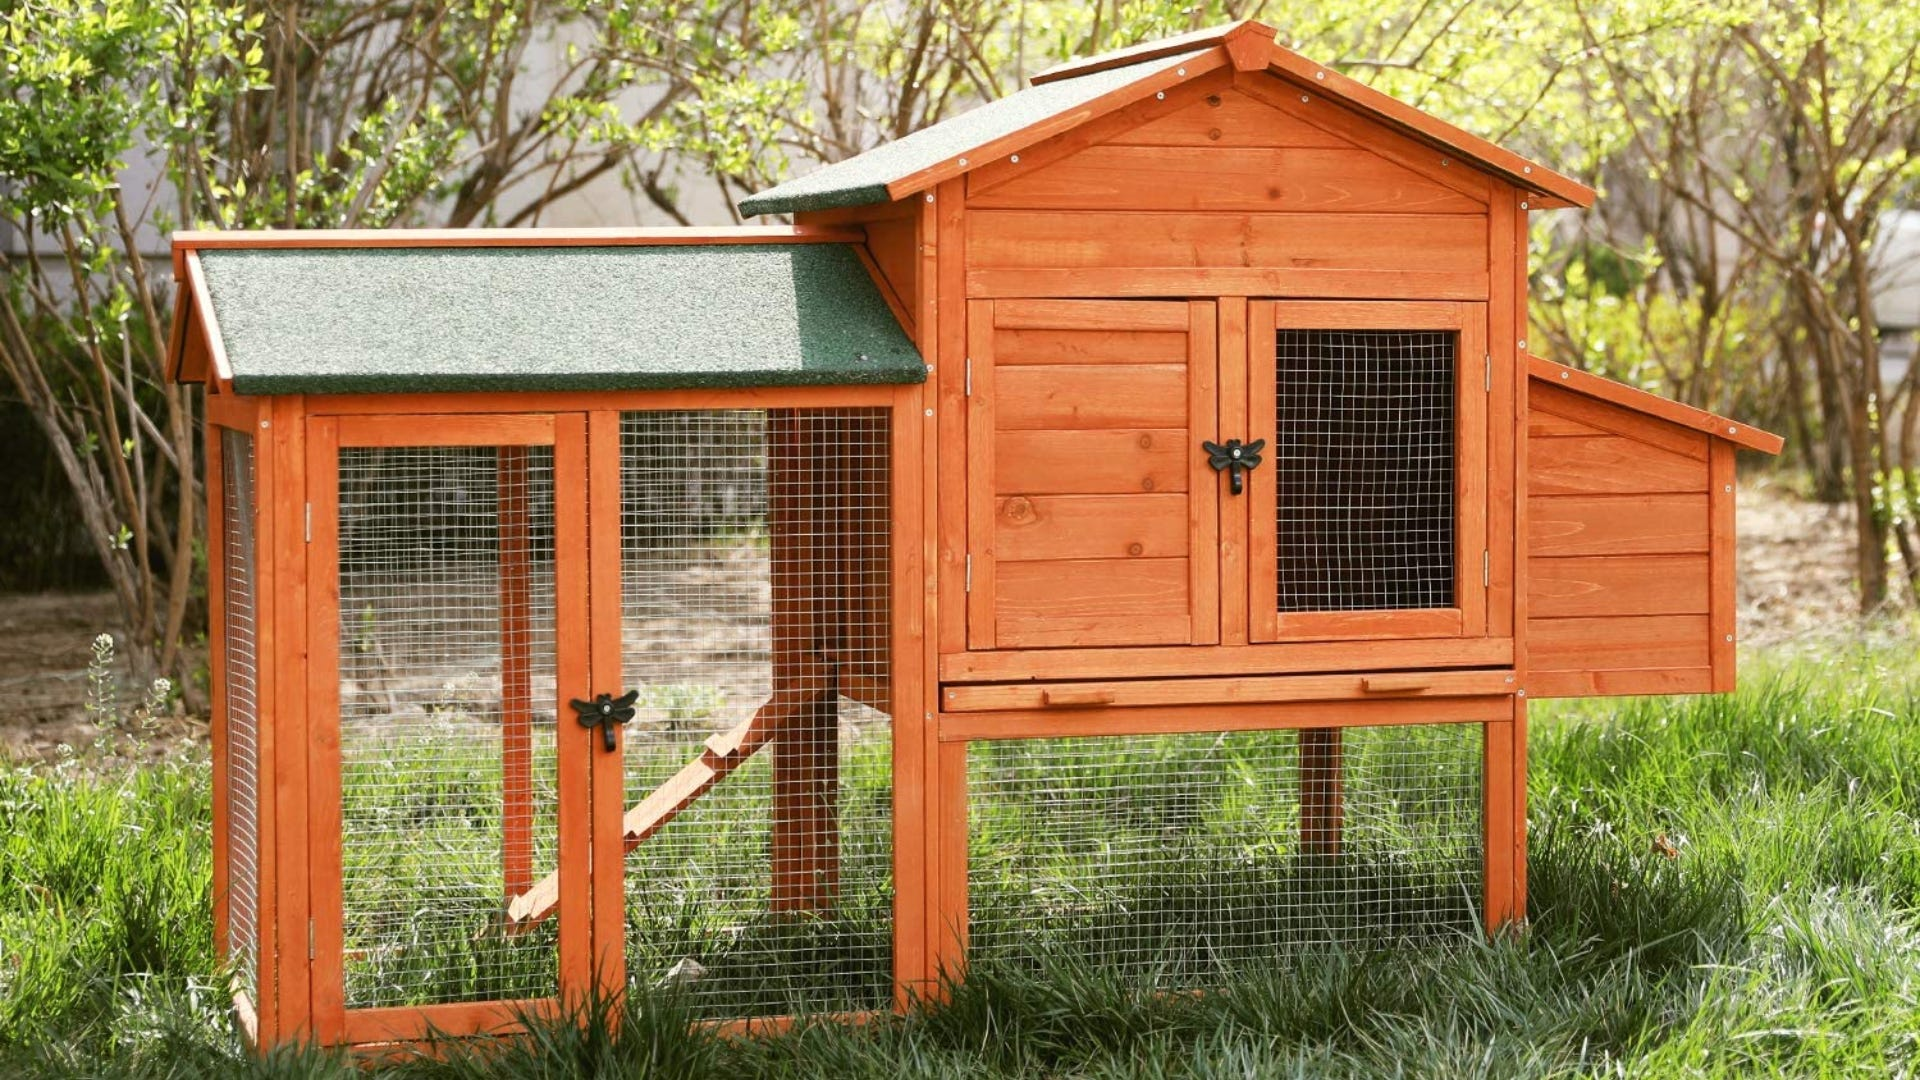 Wooden chick coop set up outside in a sunny, green garden.